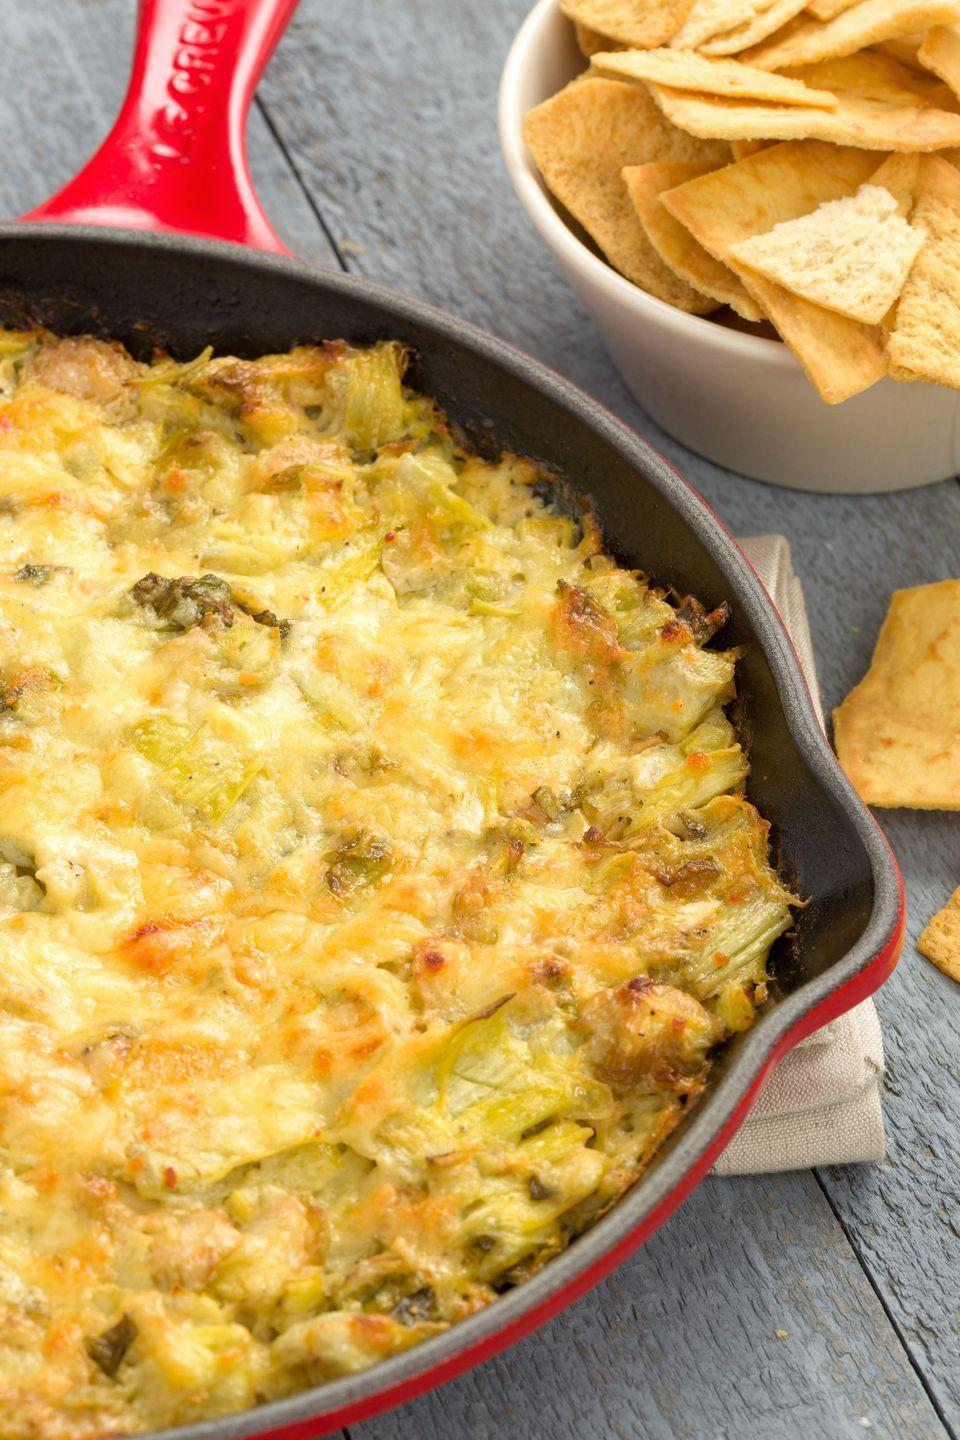 "<p>This dip is so delicious, it's sure to become a staple at all your holiday events in the future.</p><p><em>Get the recipe at <a href=""https://www.delish.com/holiday-recipes/thanksgiving/recipes/a44805/cheesy-brussels-sprout-artichoke-dip-recipe/"" rel=""nofollow noopener"" target=""_blank"" data-ylk=""slk:Delish"" class=""link rapid-noclick-resp"">Delish</a>.</em></p>"